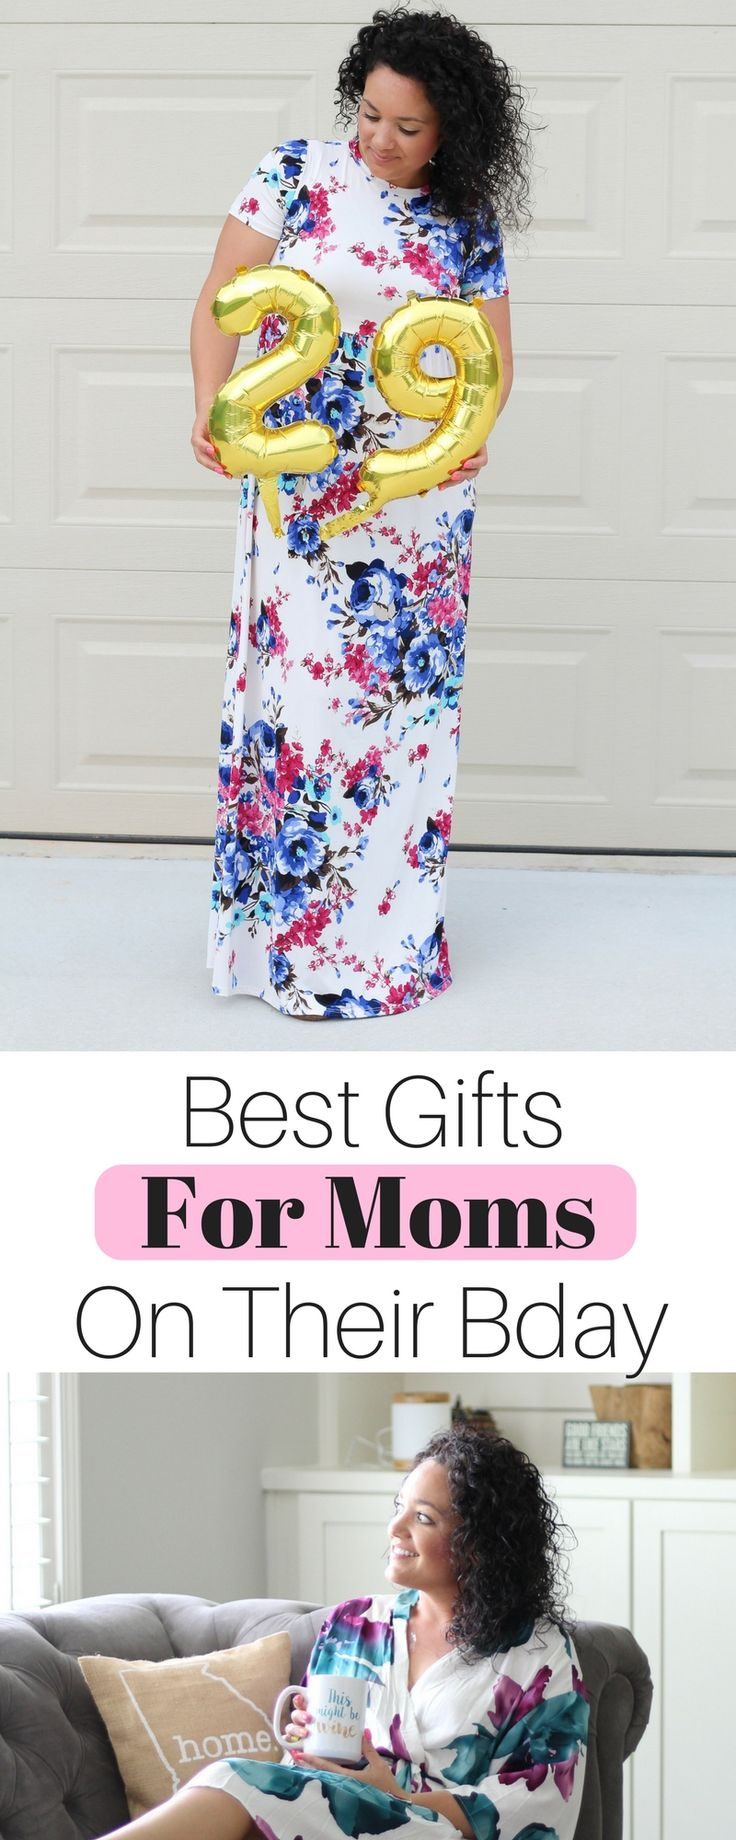 Best Gifts For Moms On Their Birthday | Motherhood Gifts | Mom Fashion | Mom Style | Easy Mom Gifts | Mother's Day | Busy Little Izzy Blog